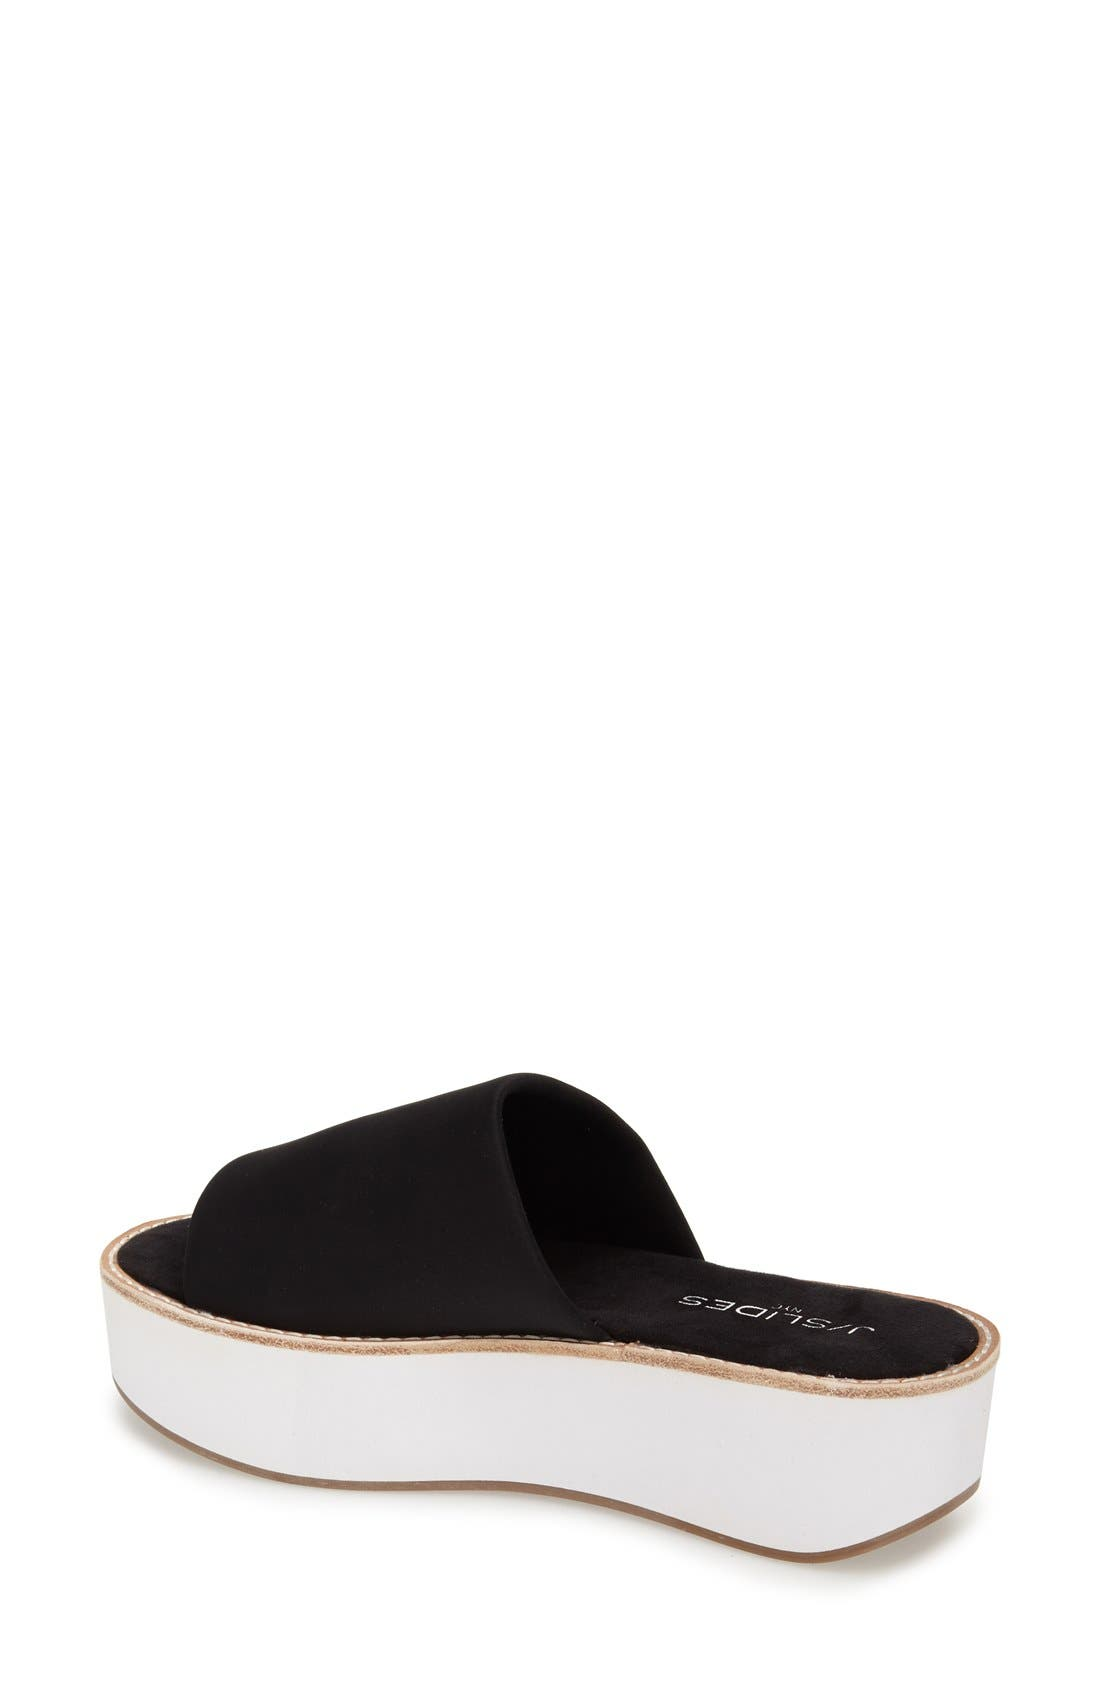 Alternate Image 2  - JSlides 'Blinky' Flatform Slide Sandal (Women)